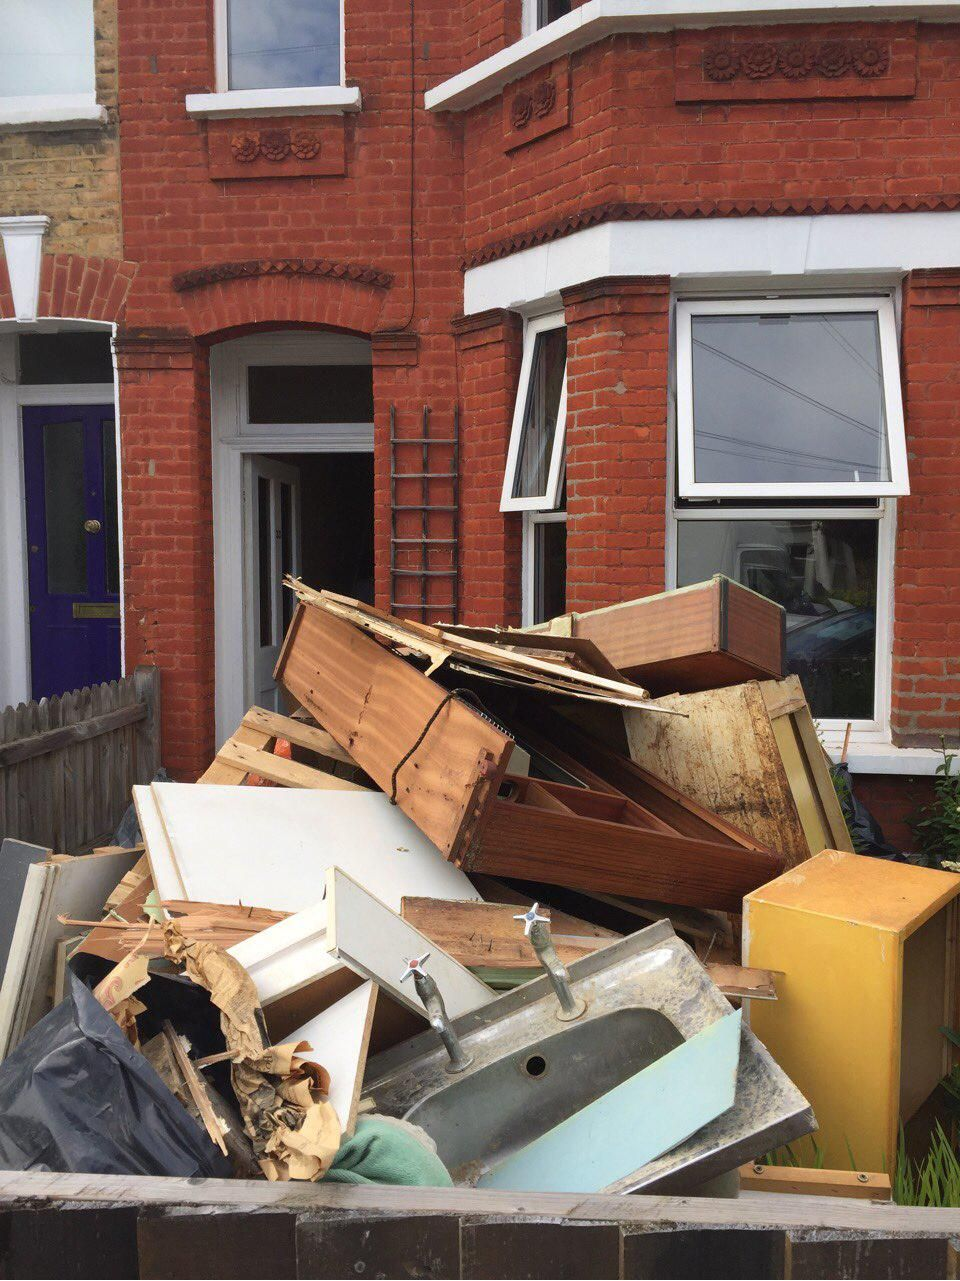 Mill Hill domestic rubbish clearance NW7